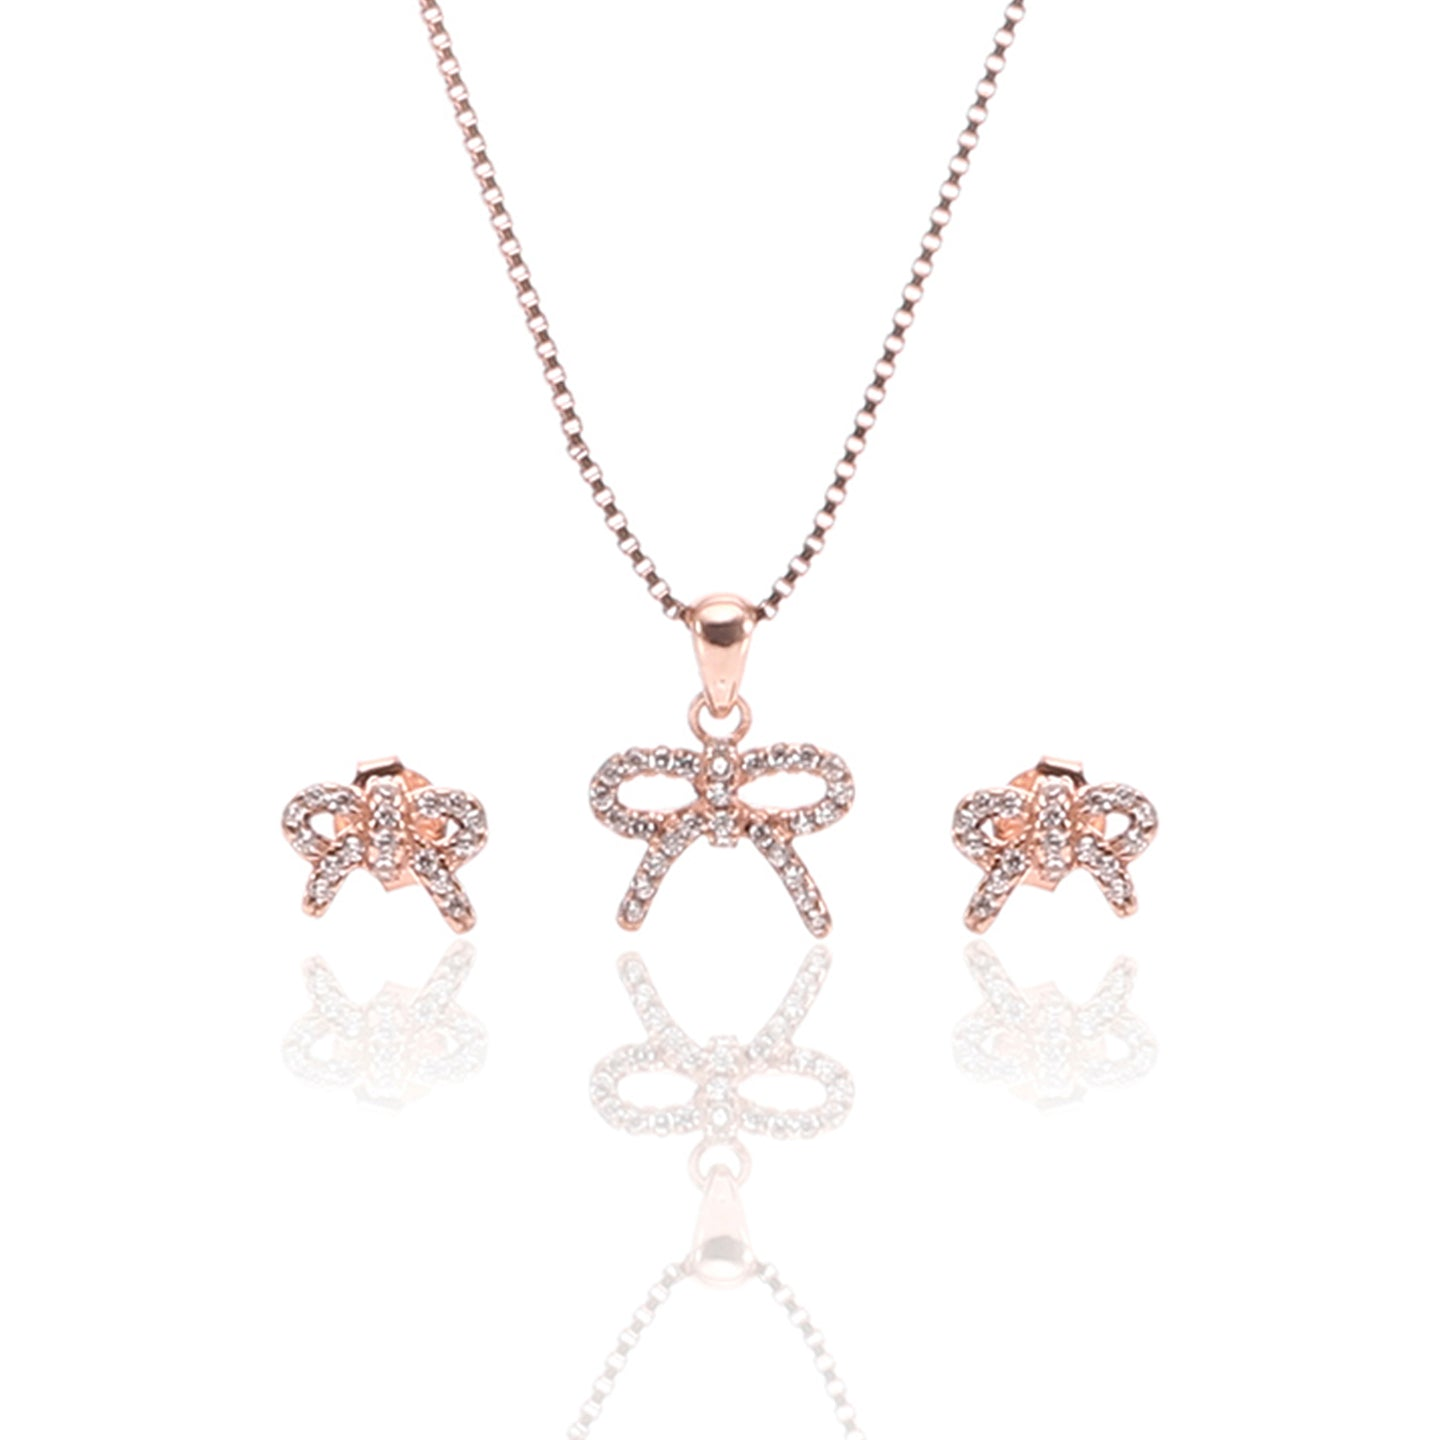 Sparkling Bow Pendant Necklace and Earrings Set - ARJW1010RG - ARCADIO LIFESTYLE